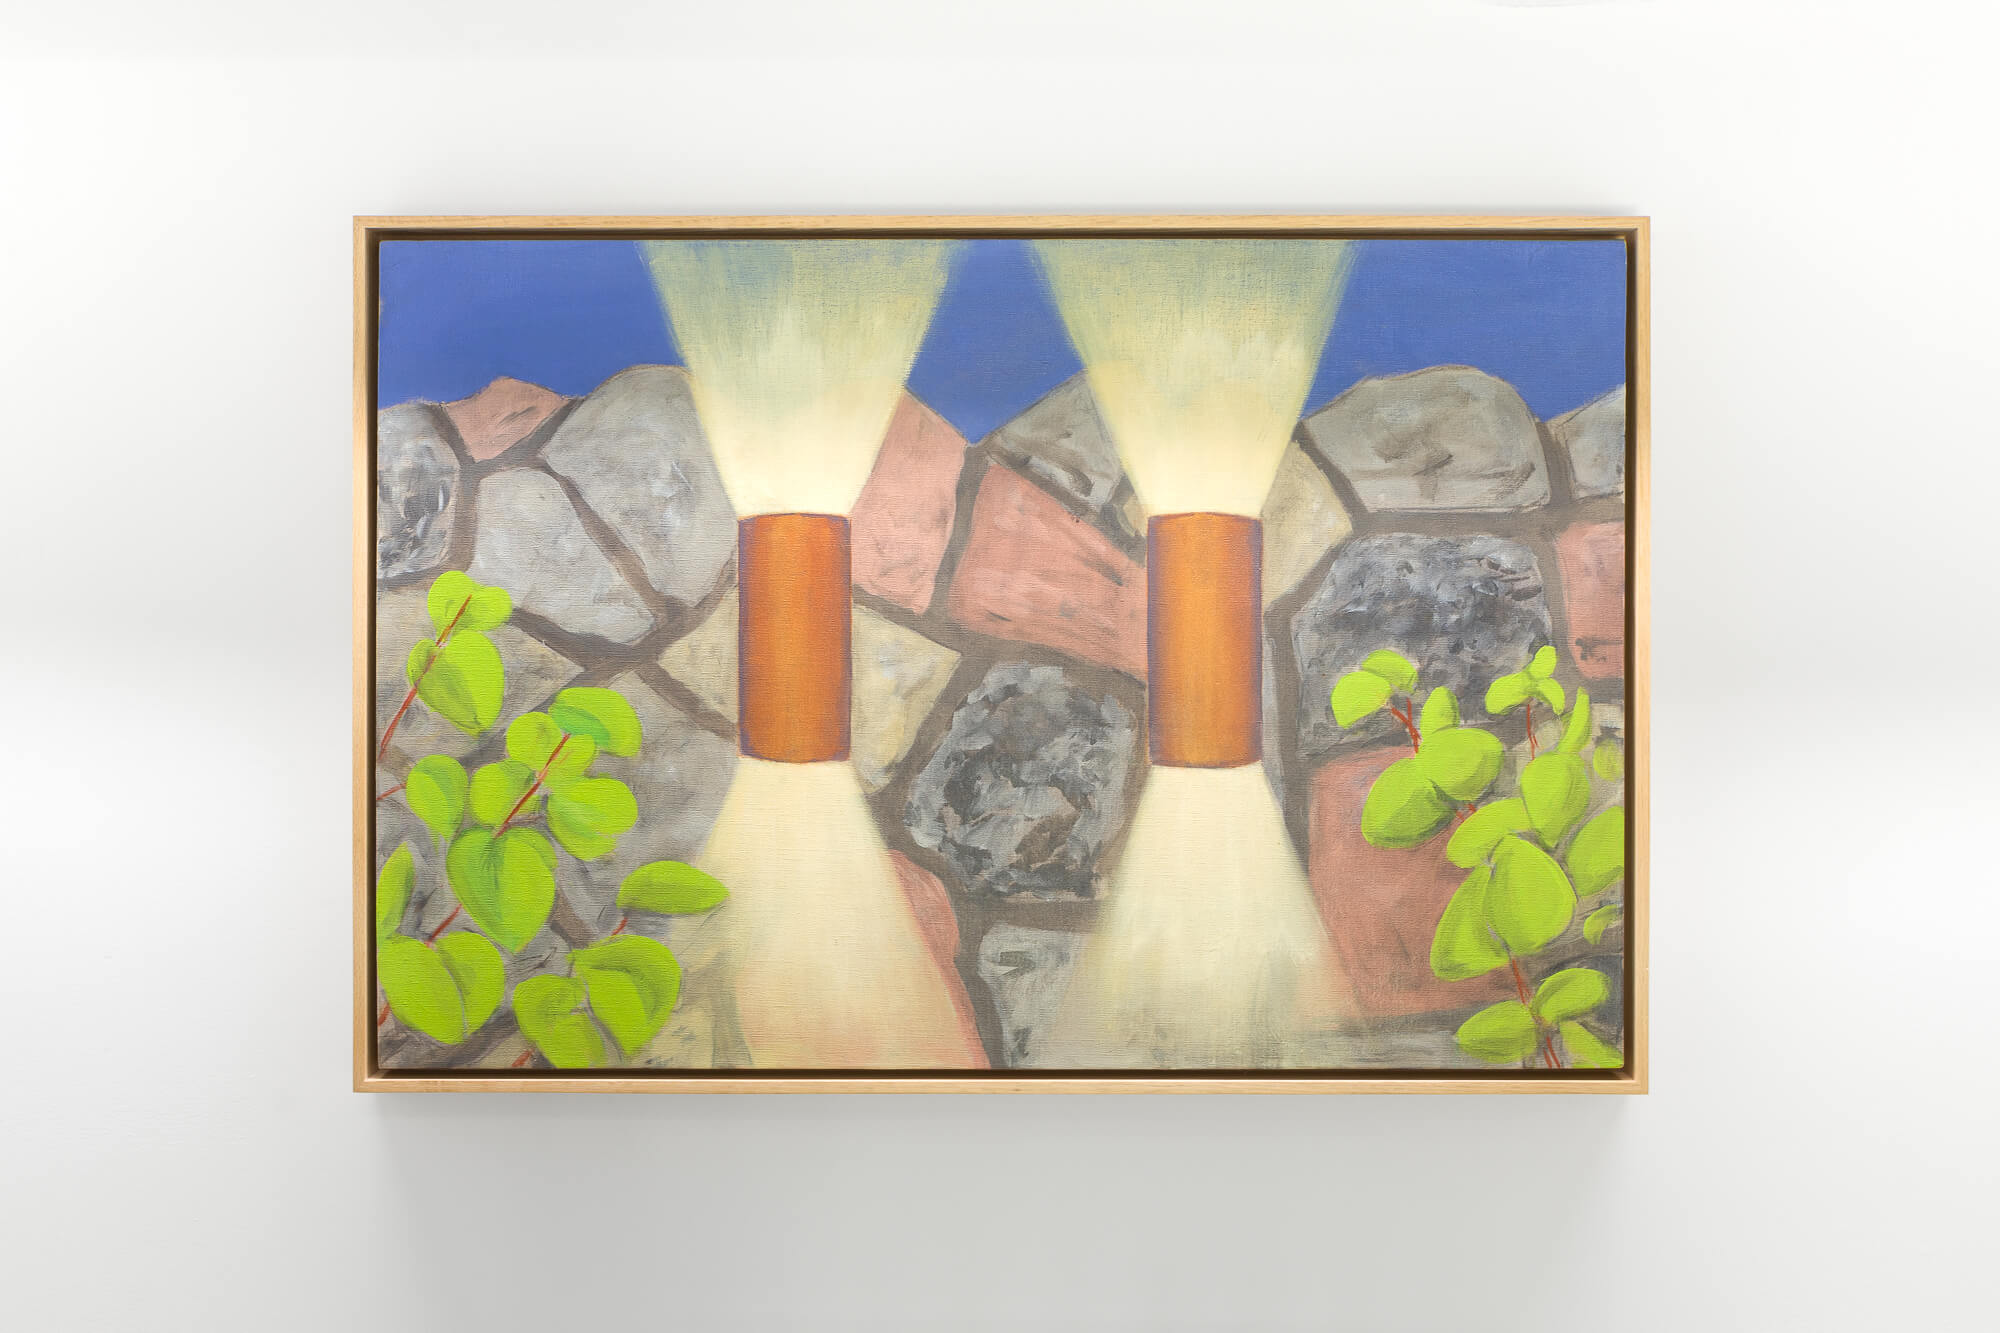 William Leavitt, Twin Wall Lights, 2011. Oil on canvas. Courtesy of the artist and Greene Naftali, New York. Swiss Institute SI ONSITE